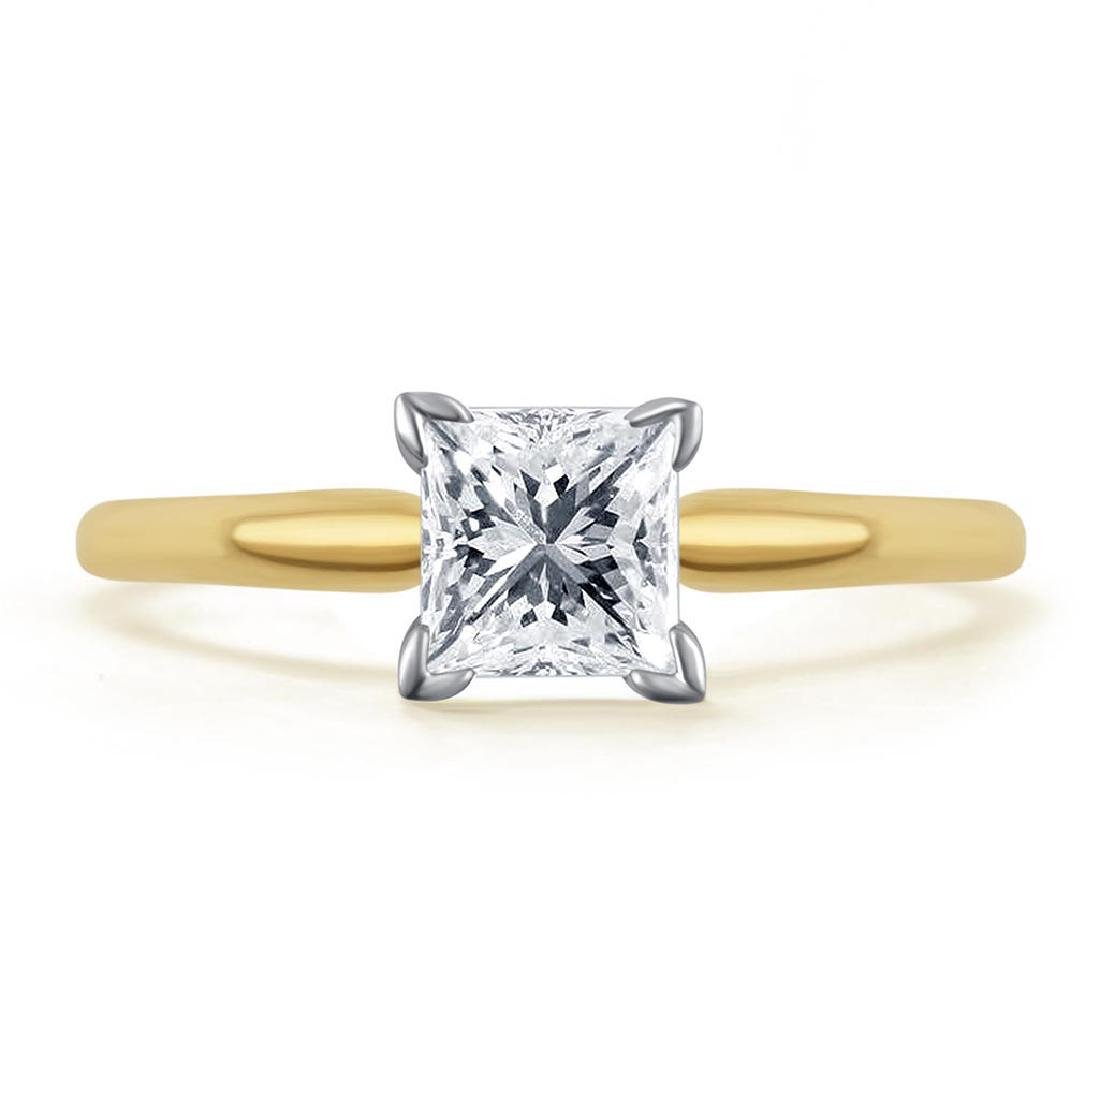 CERTIFIED 1.11 CTW PRINCESS G/VS1 SOLITAIRE RING IN 14K